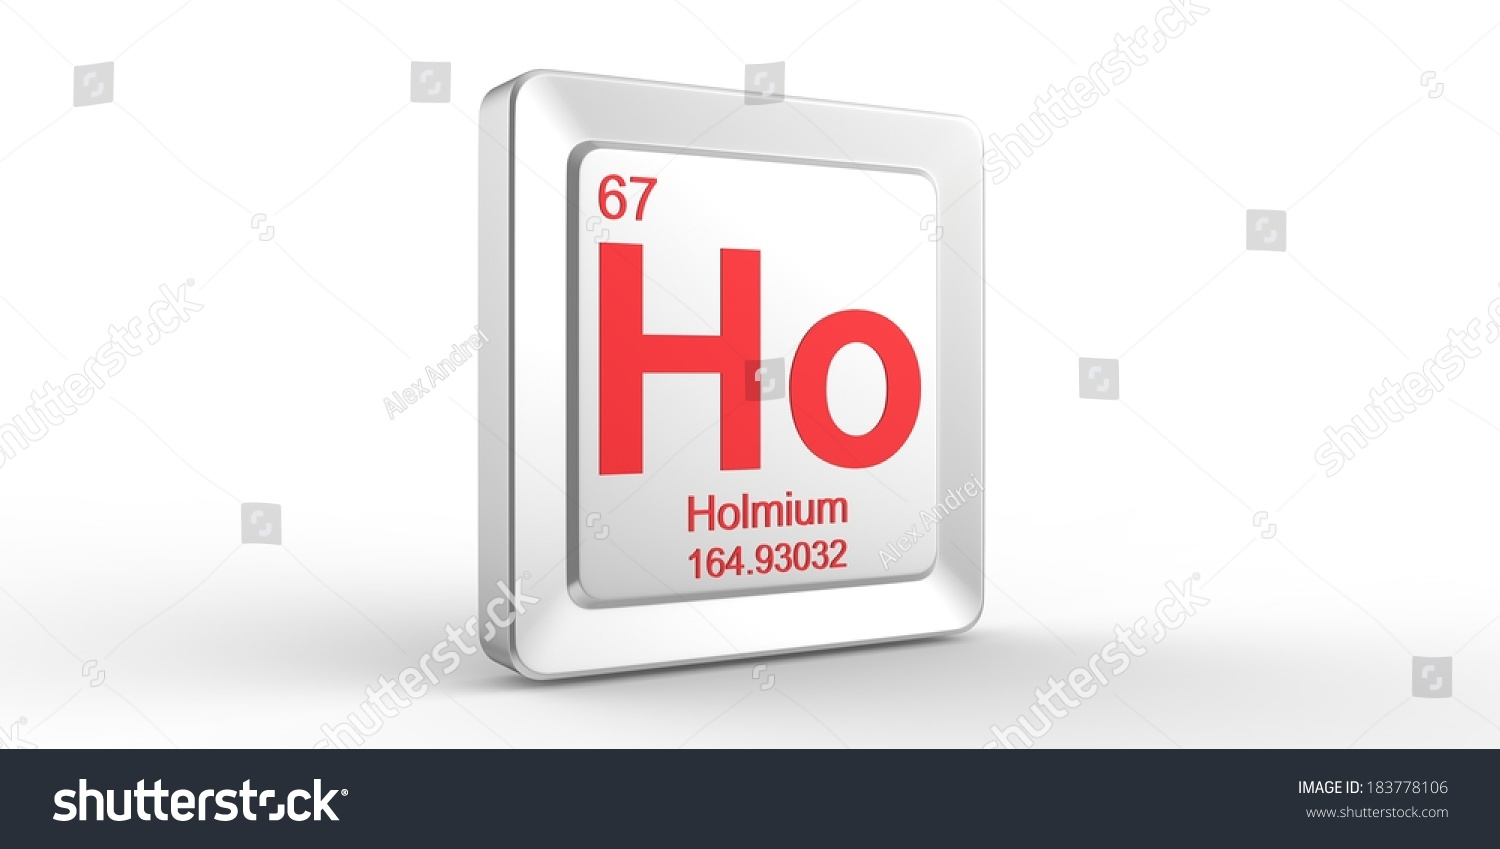 Ho element periodic table gallery periodic table images ho symbol 67 material holmium chemical stock illustration ho symbol 67 material for holmium chemical element gamestrikefo Gallery